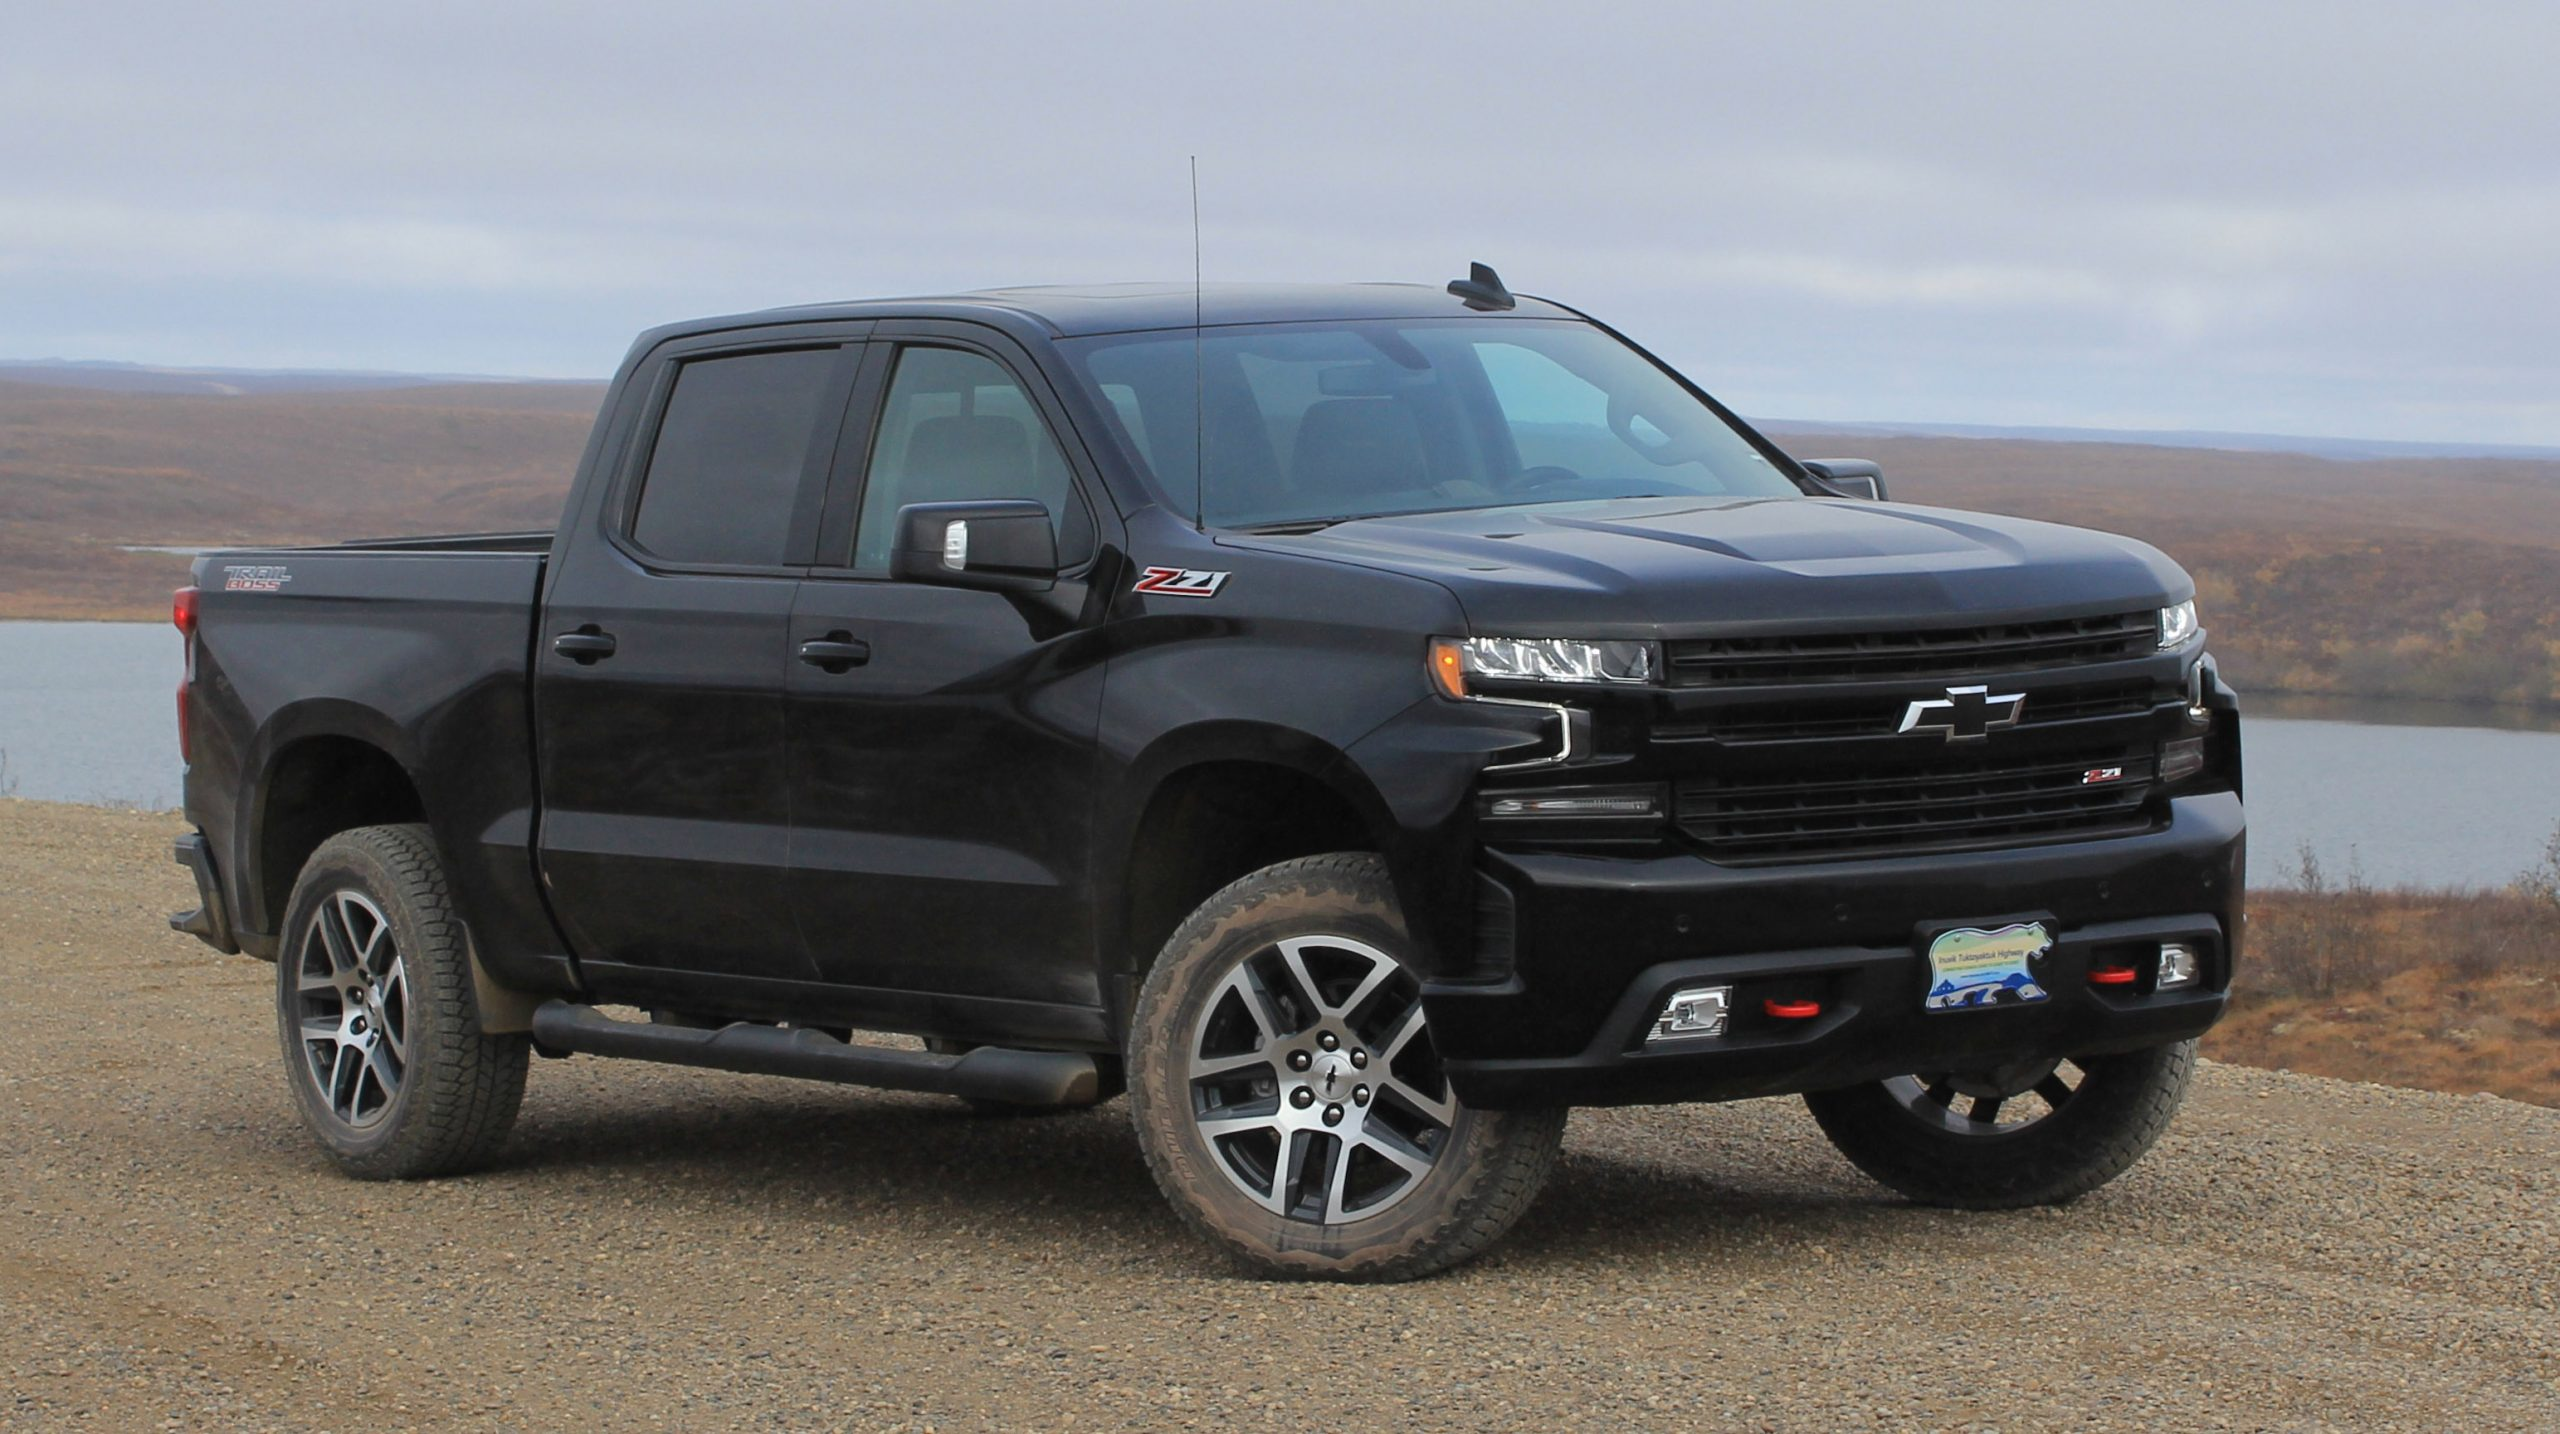 Is Now a Good Time To Buy A New Truck?